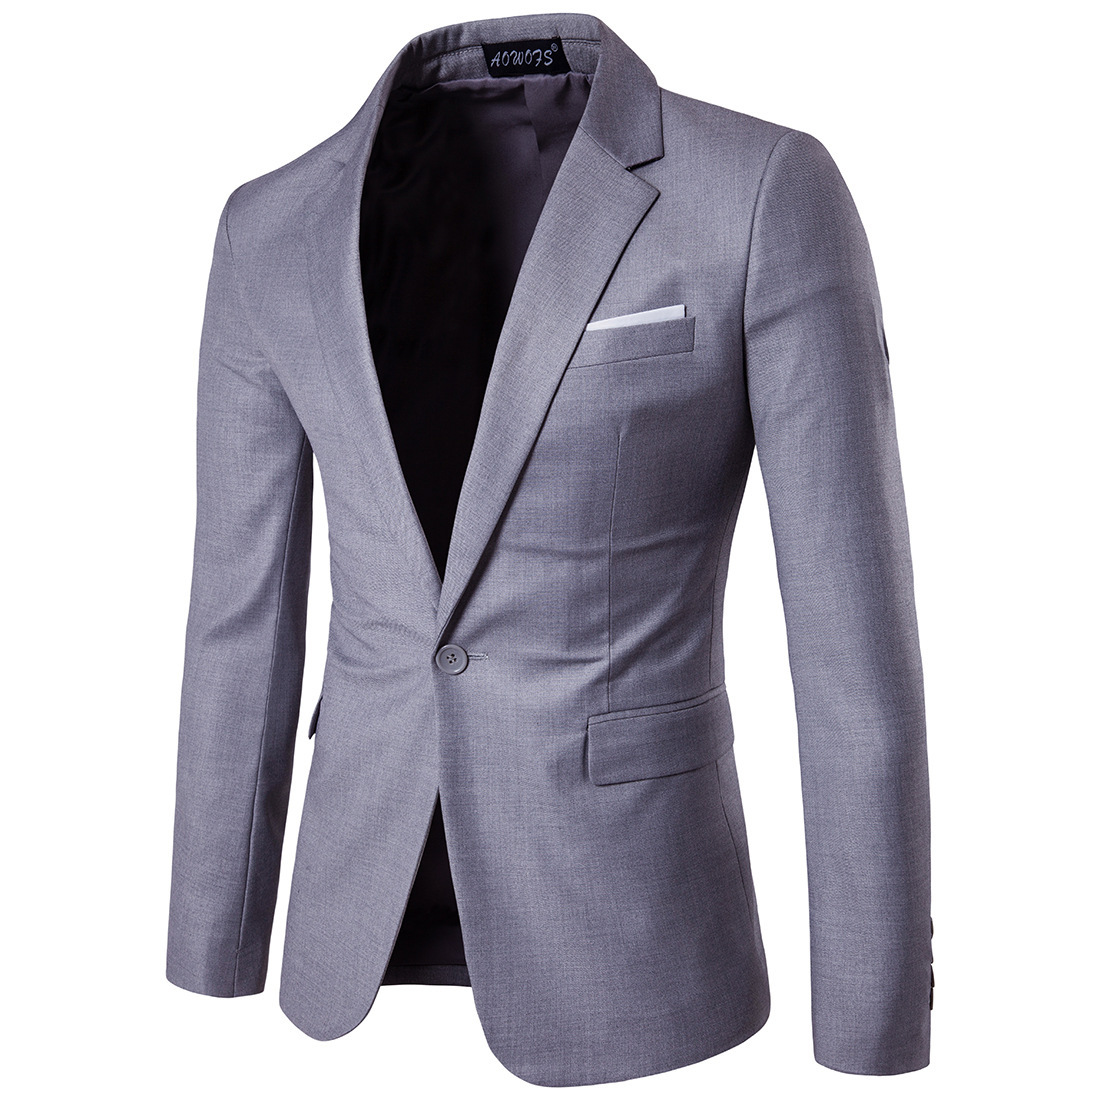 2019 Business Leisure Suit Lang Best Man Wedding One-Button Suit Jacket MEN'S Wear Large Size